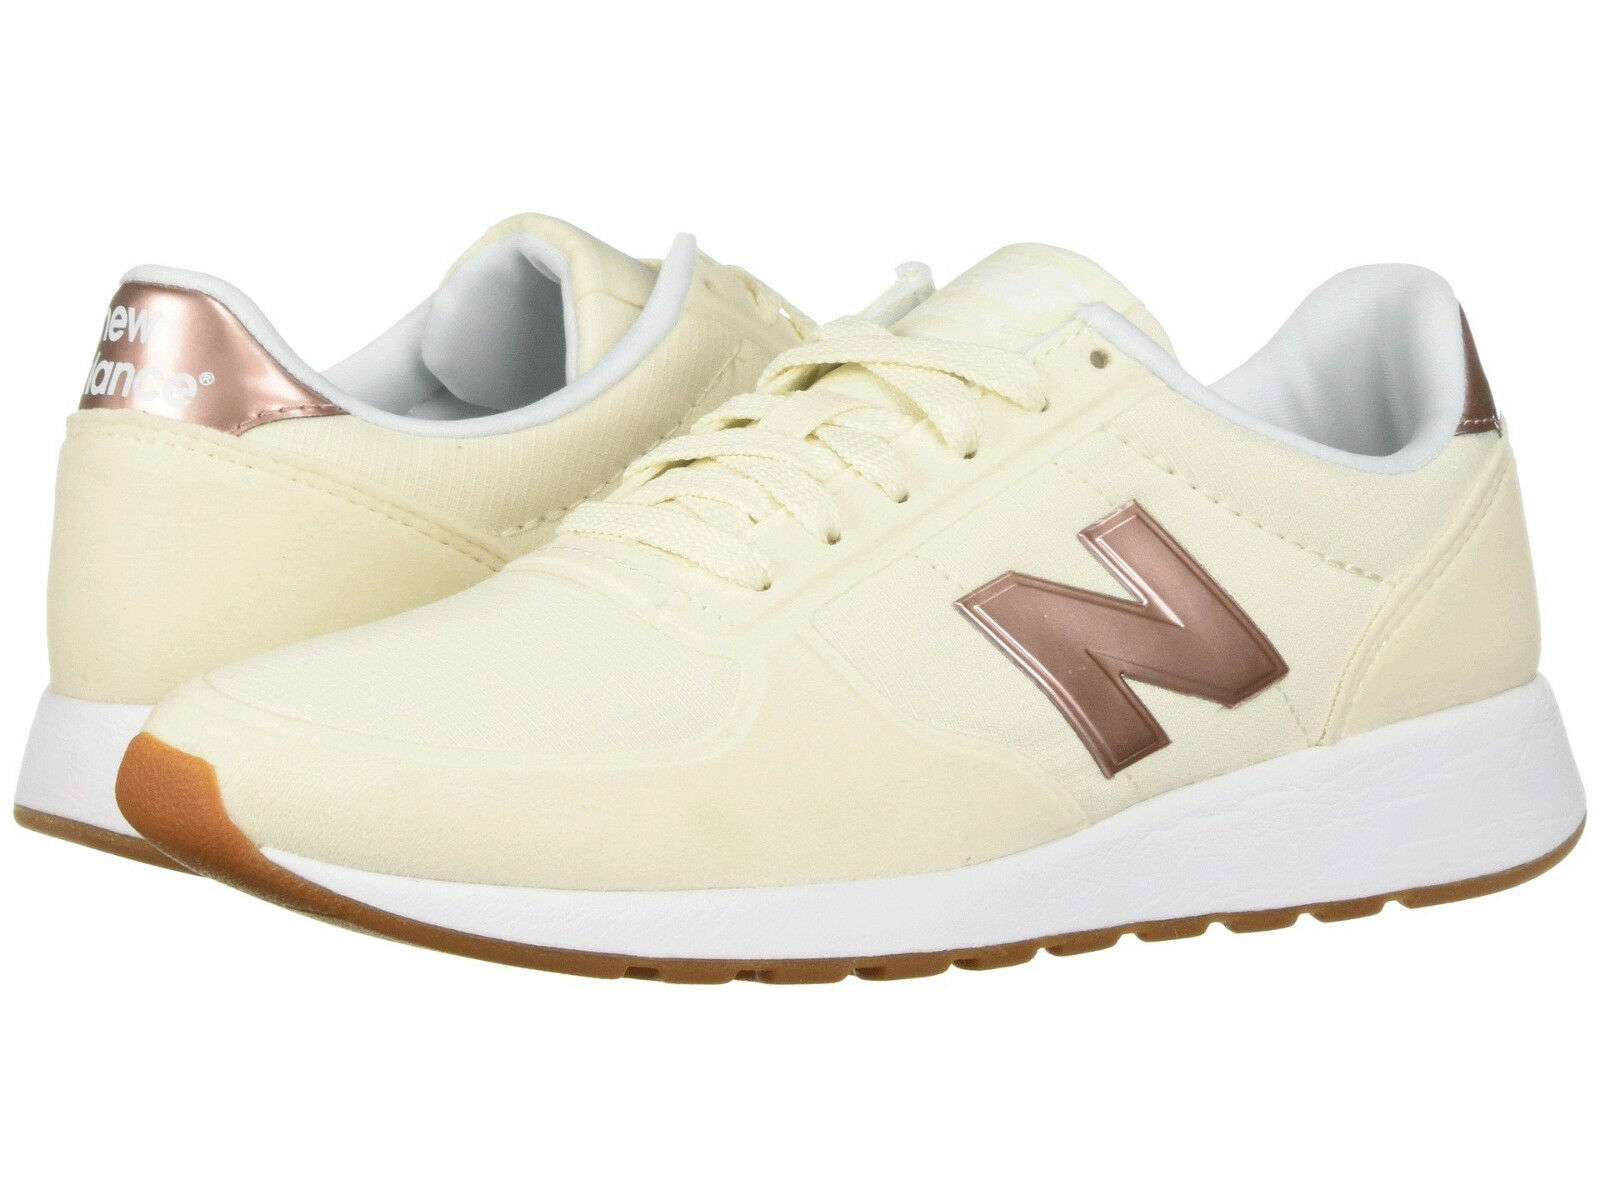 Women New Balance WS215AG Sneaker shoes Medium (B) Angora White 100%Original New